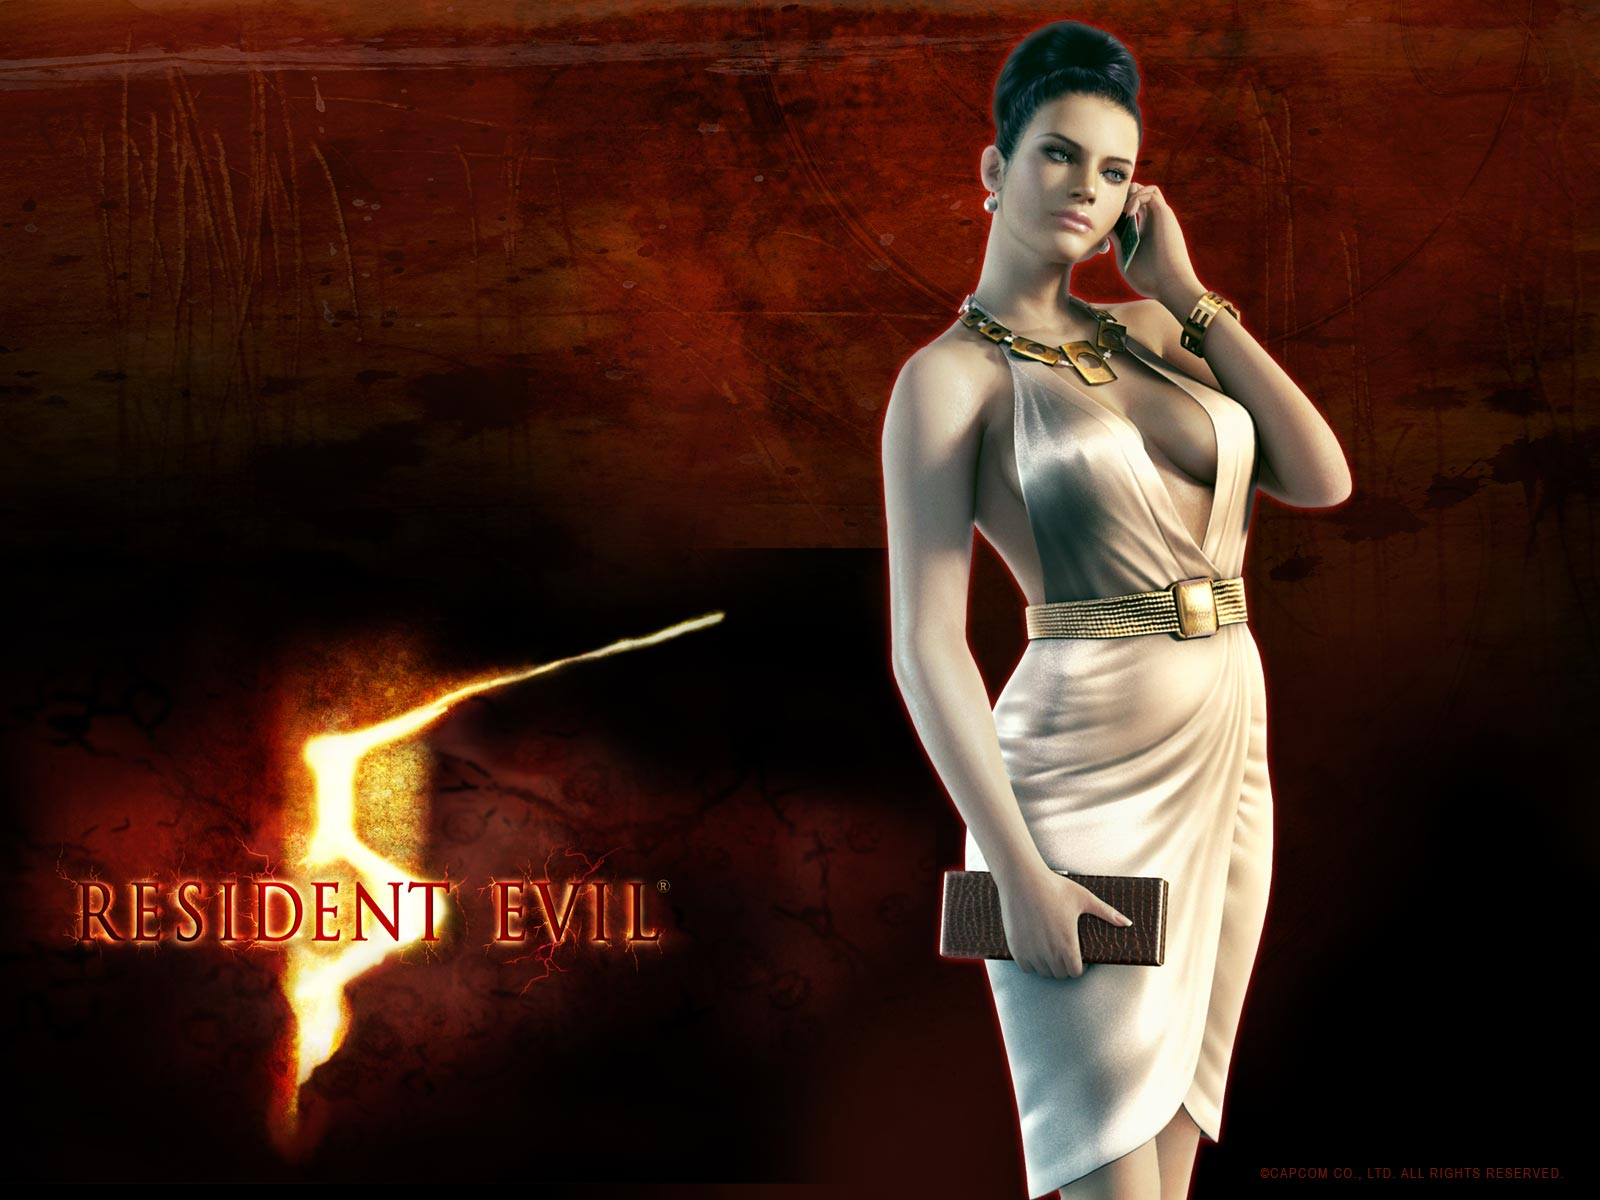 Resident evil 5 nuds girls pic adult scene